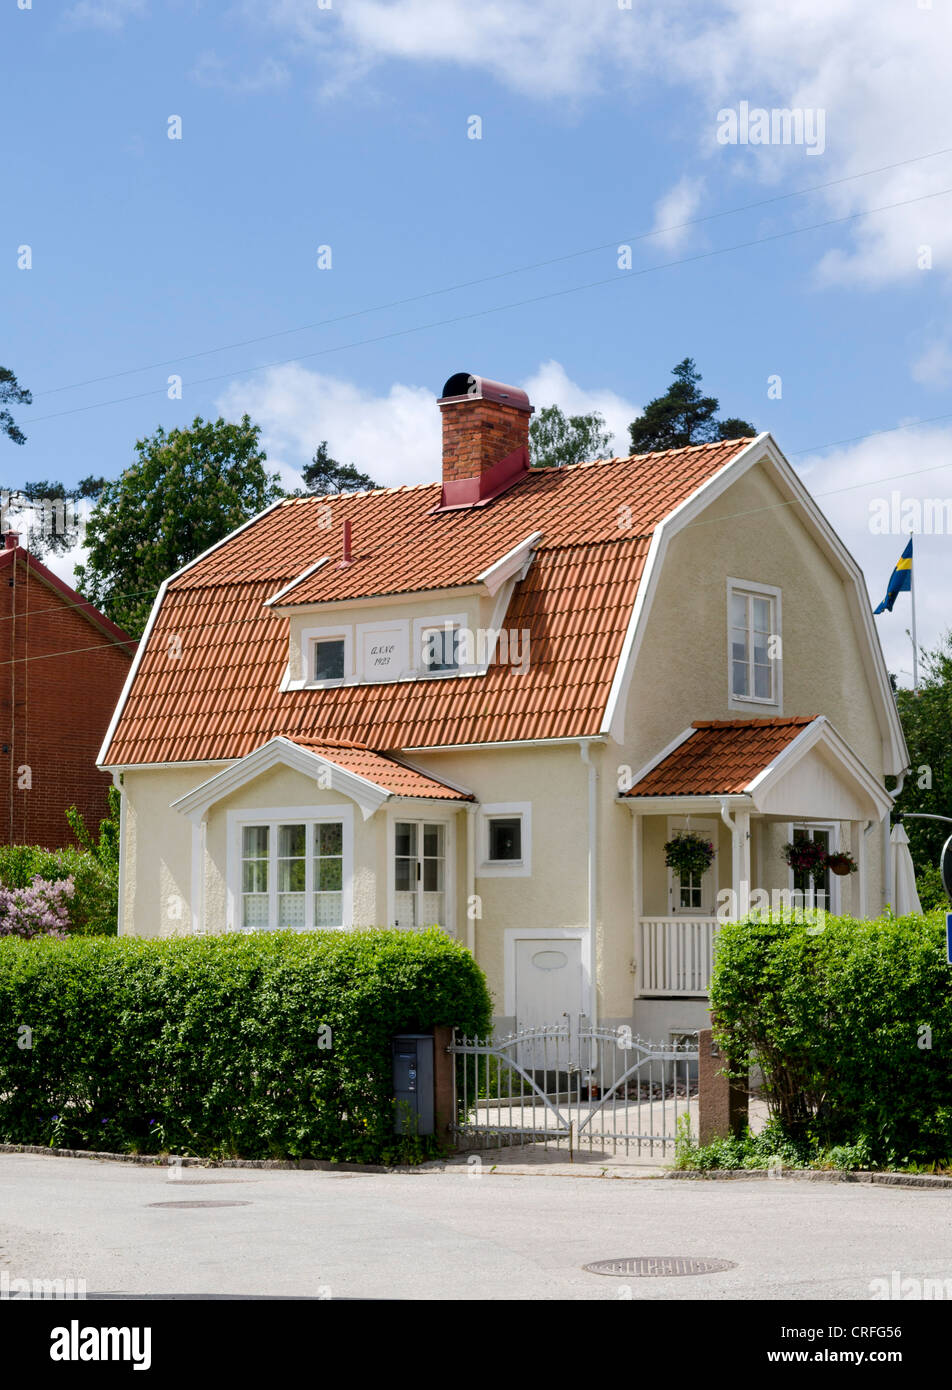 Typical detached house in suburbs of Stockholm, Sweden Stock Photo